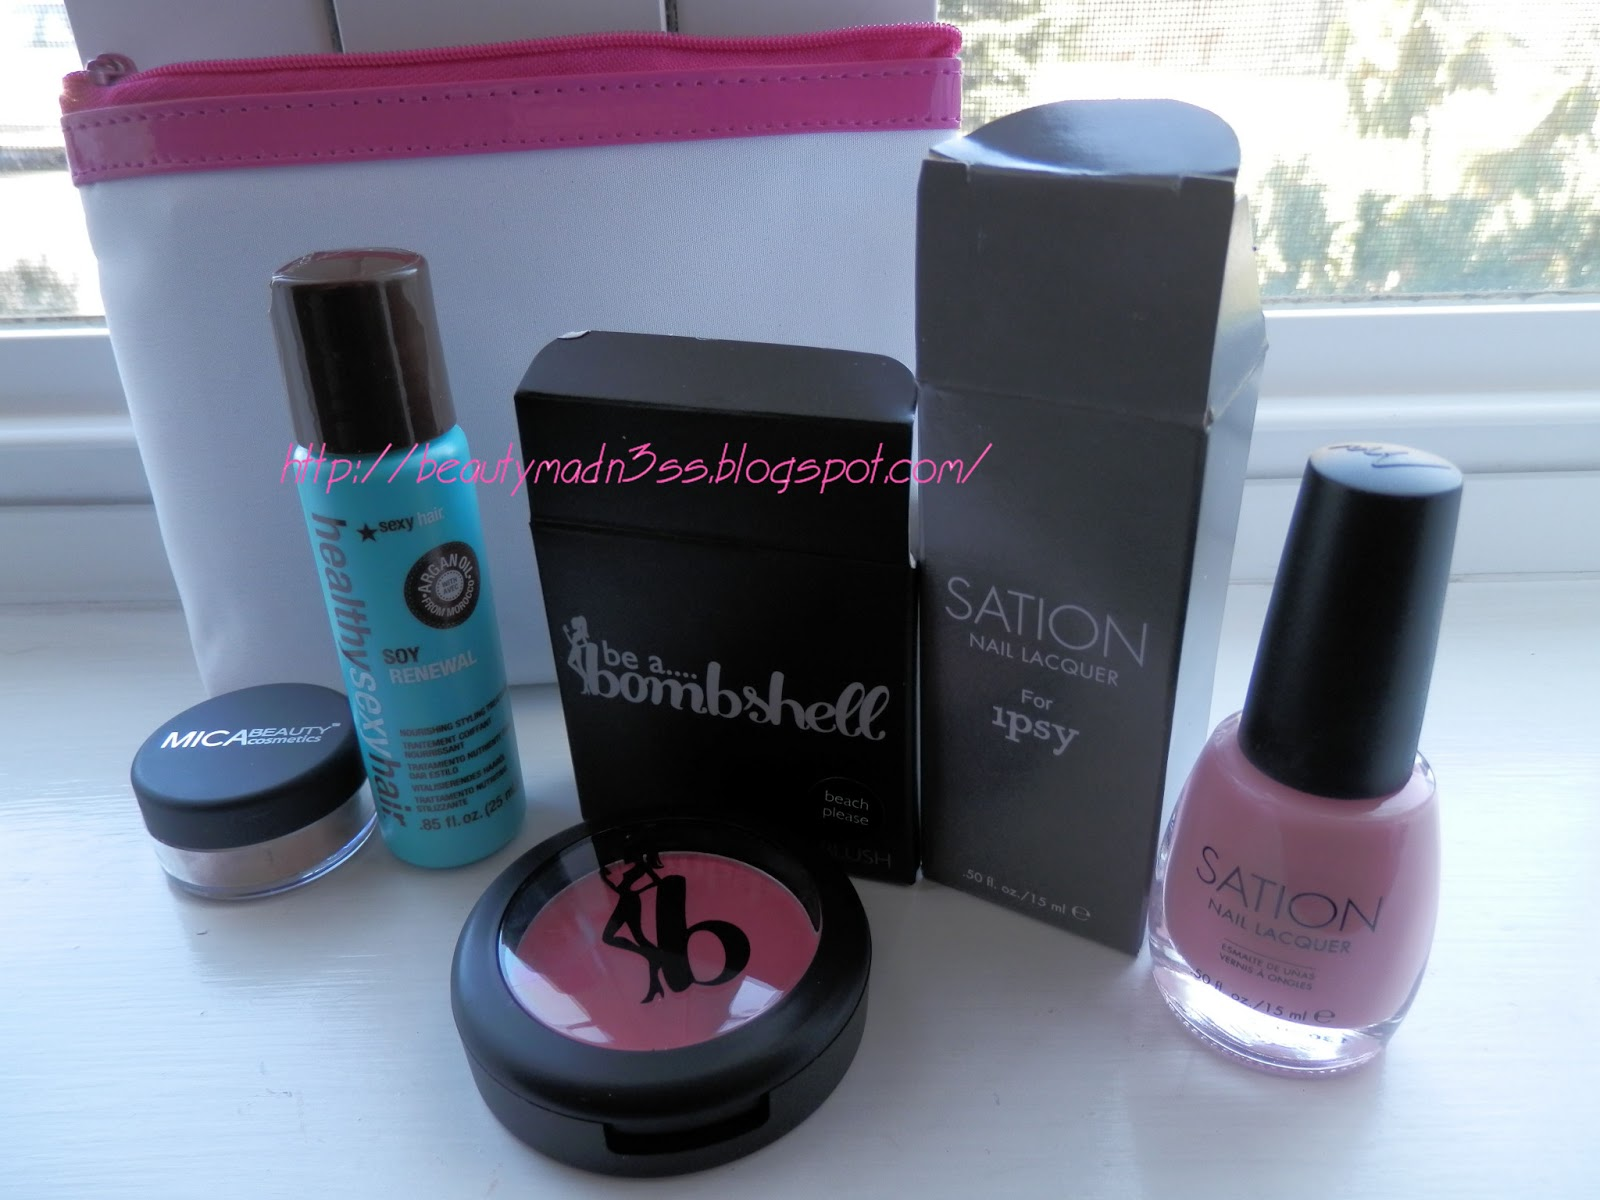 April Ipsy 2013, April Ipsy Glam Bag,Be A Bombshell, Be A Bombshell Beach Please, Sexy Hair Soy Renewal, Sexy Hair, MICABeauty Cosmetics,MICABeauty Cosmetics Mineral Eye Shadow Earth, Sation Nail Lacquer, Sation Nail Lacquer Of Corset I'll Call You